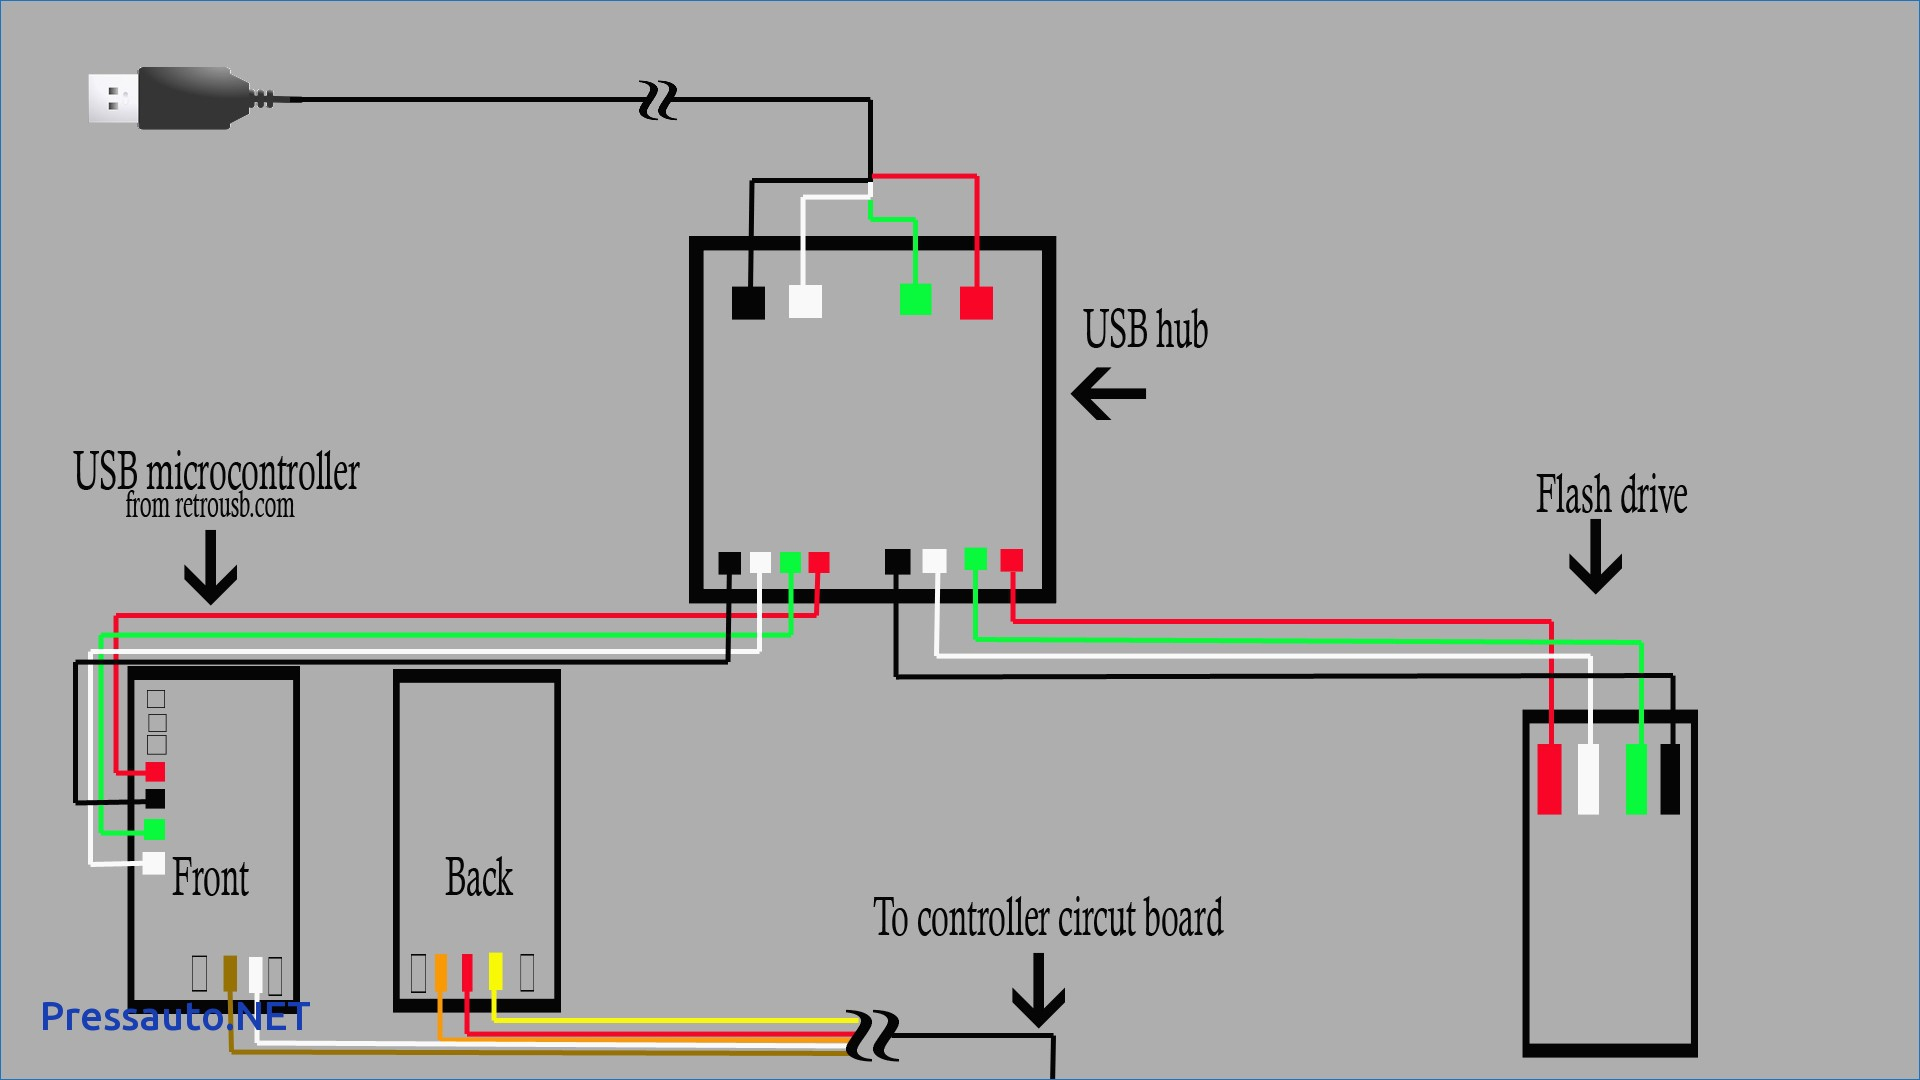 Ipod Usb Data Cable To Hdmi Wiring Diagram | Wiring Diagram - Wiring Diagram For Usb Cable To Ipod